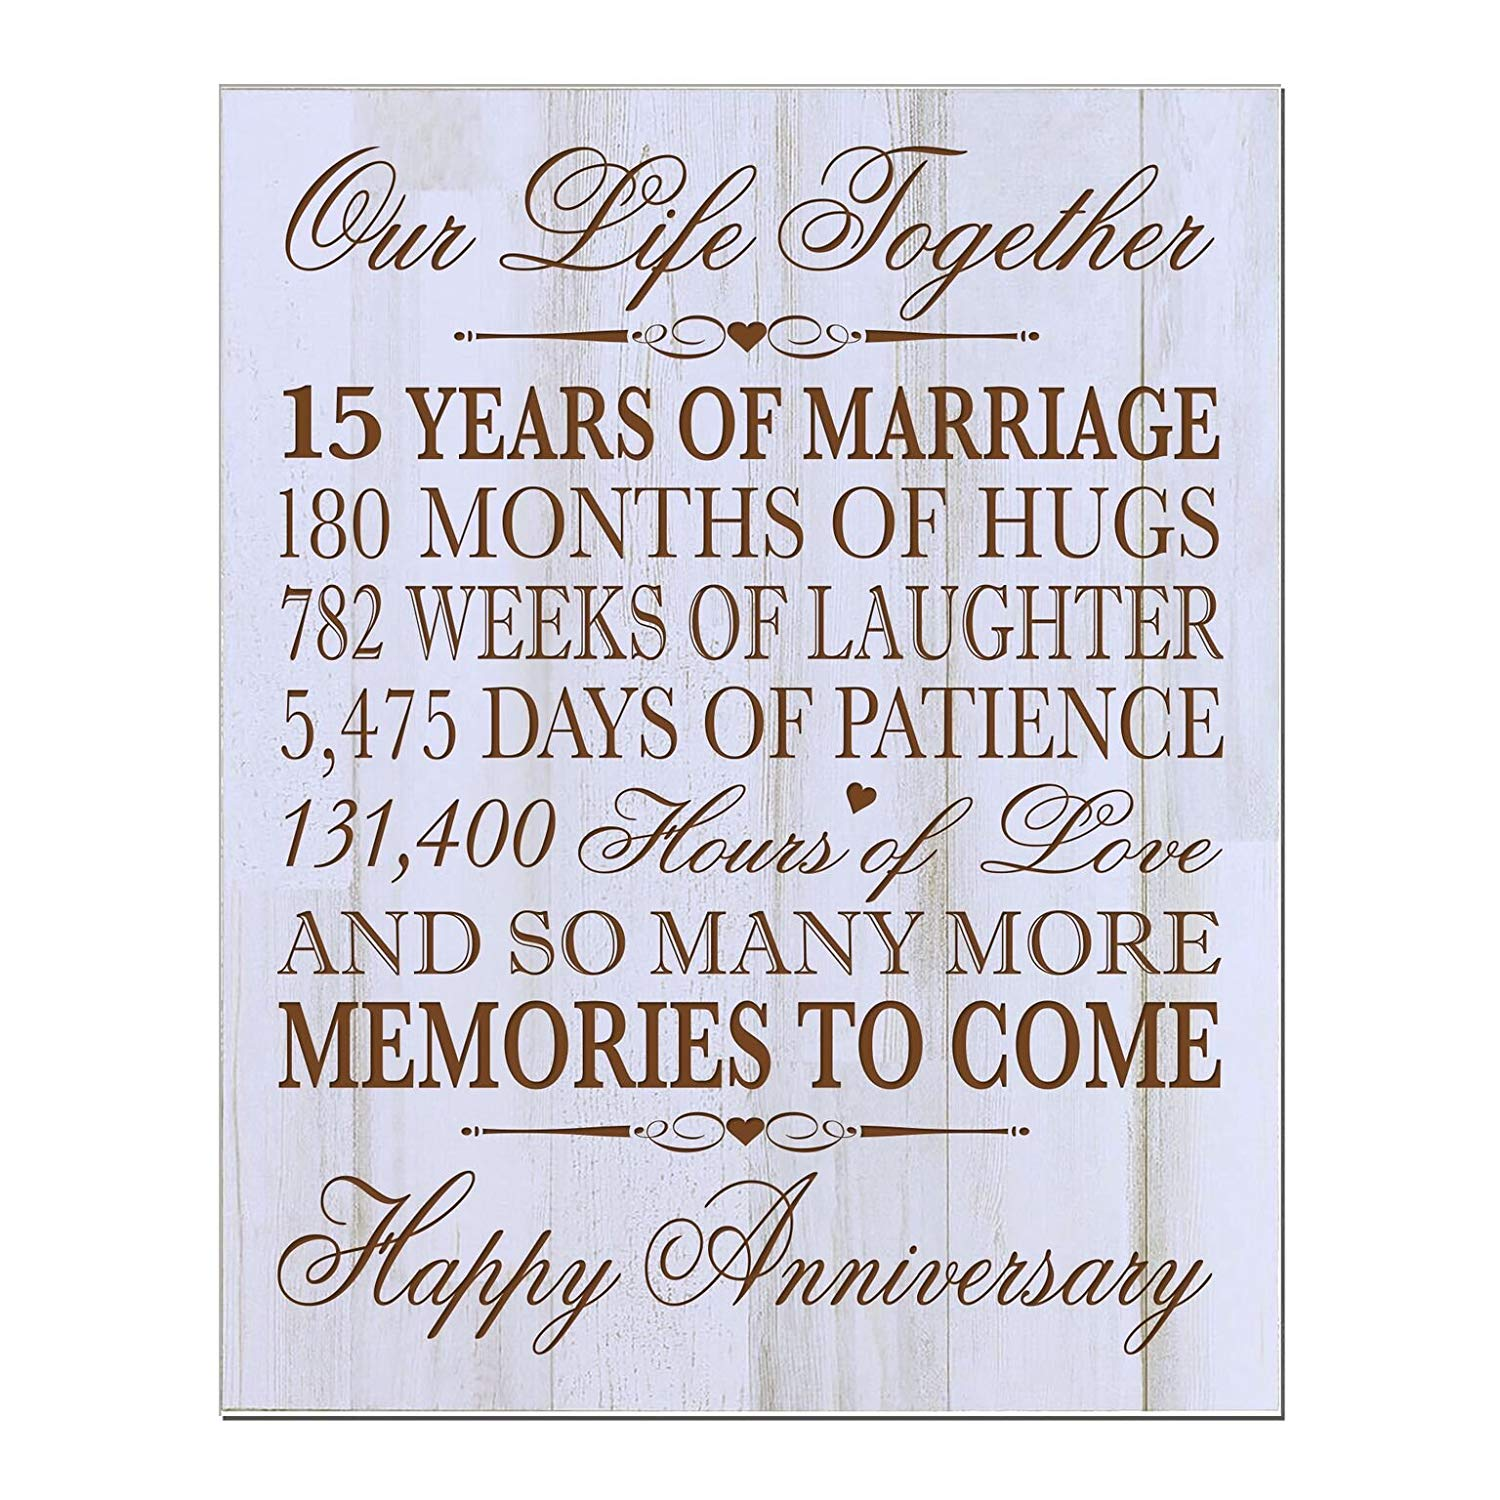 15th Wedding Anniversary Gifts For Him: Buy 15th Wedding Anniversary Gift For Couple,15th